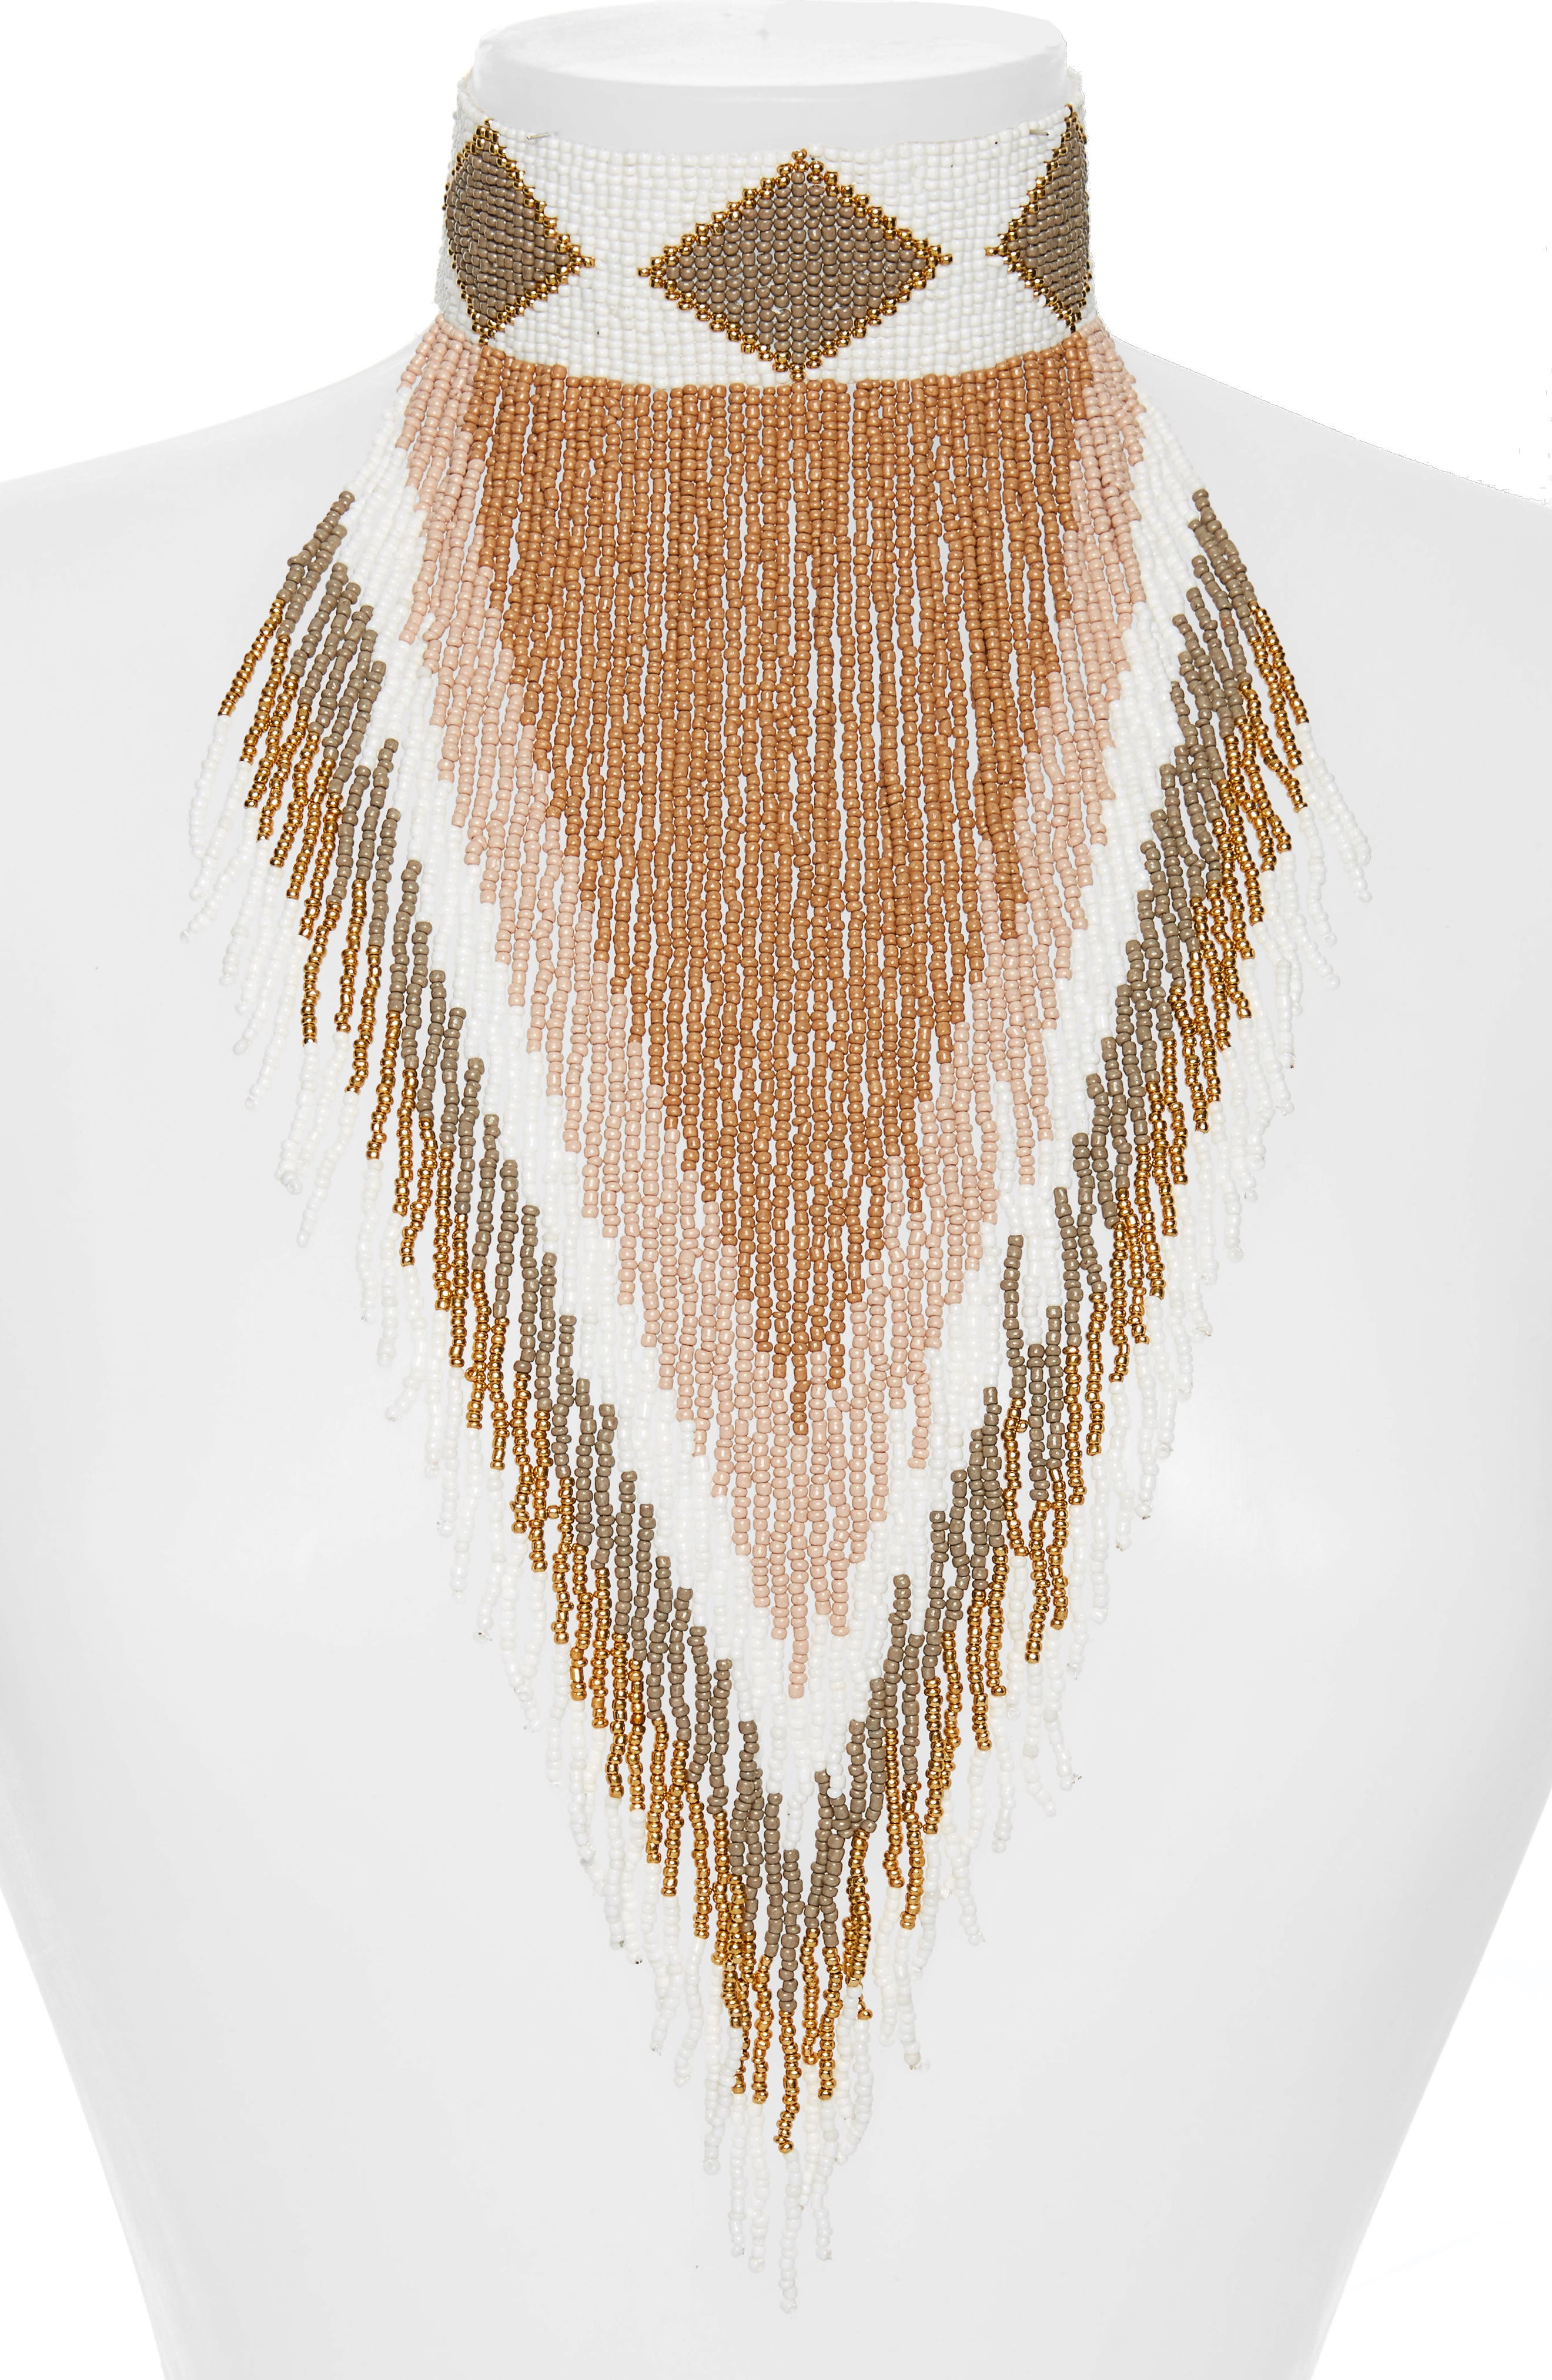 Panacea Fringe Statement Necklace